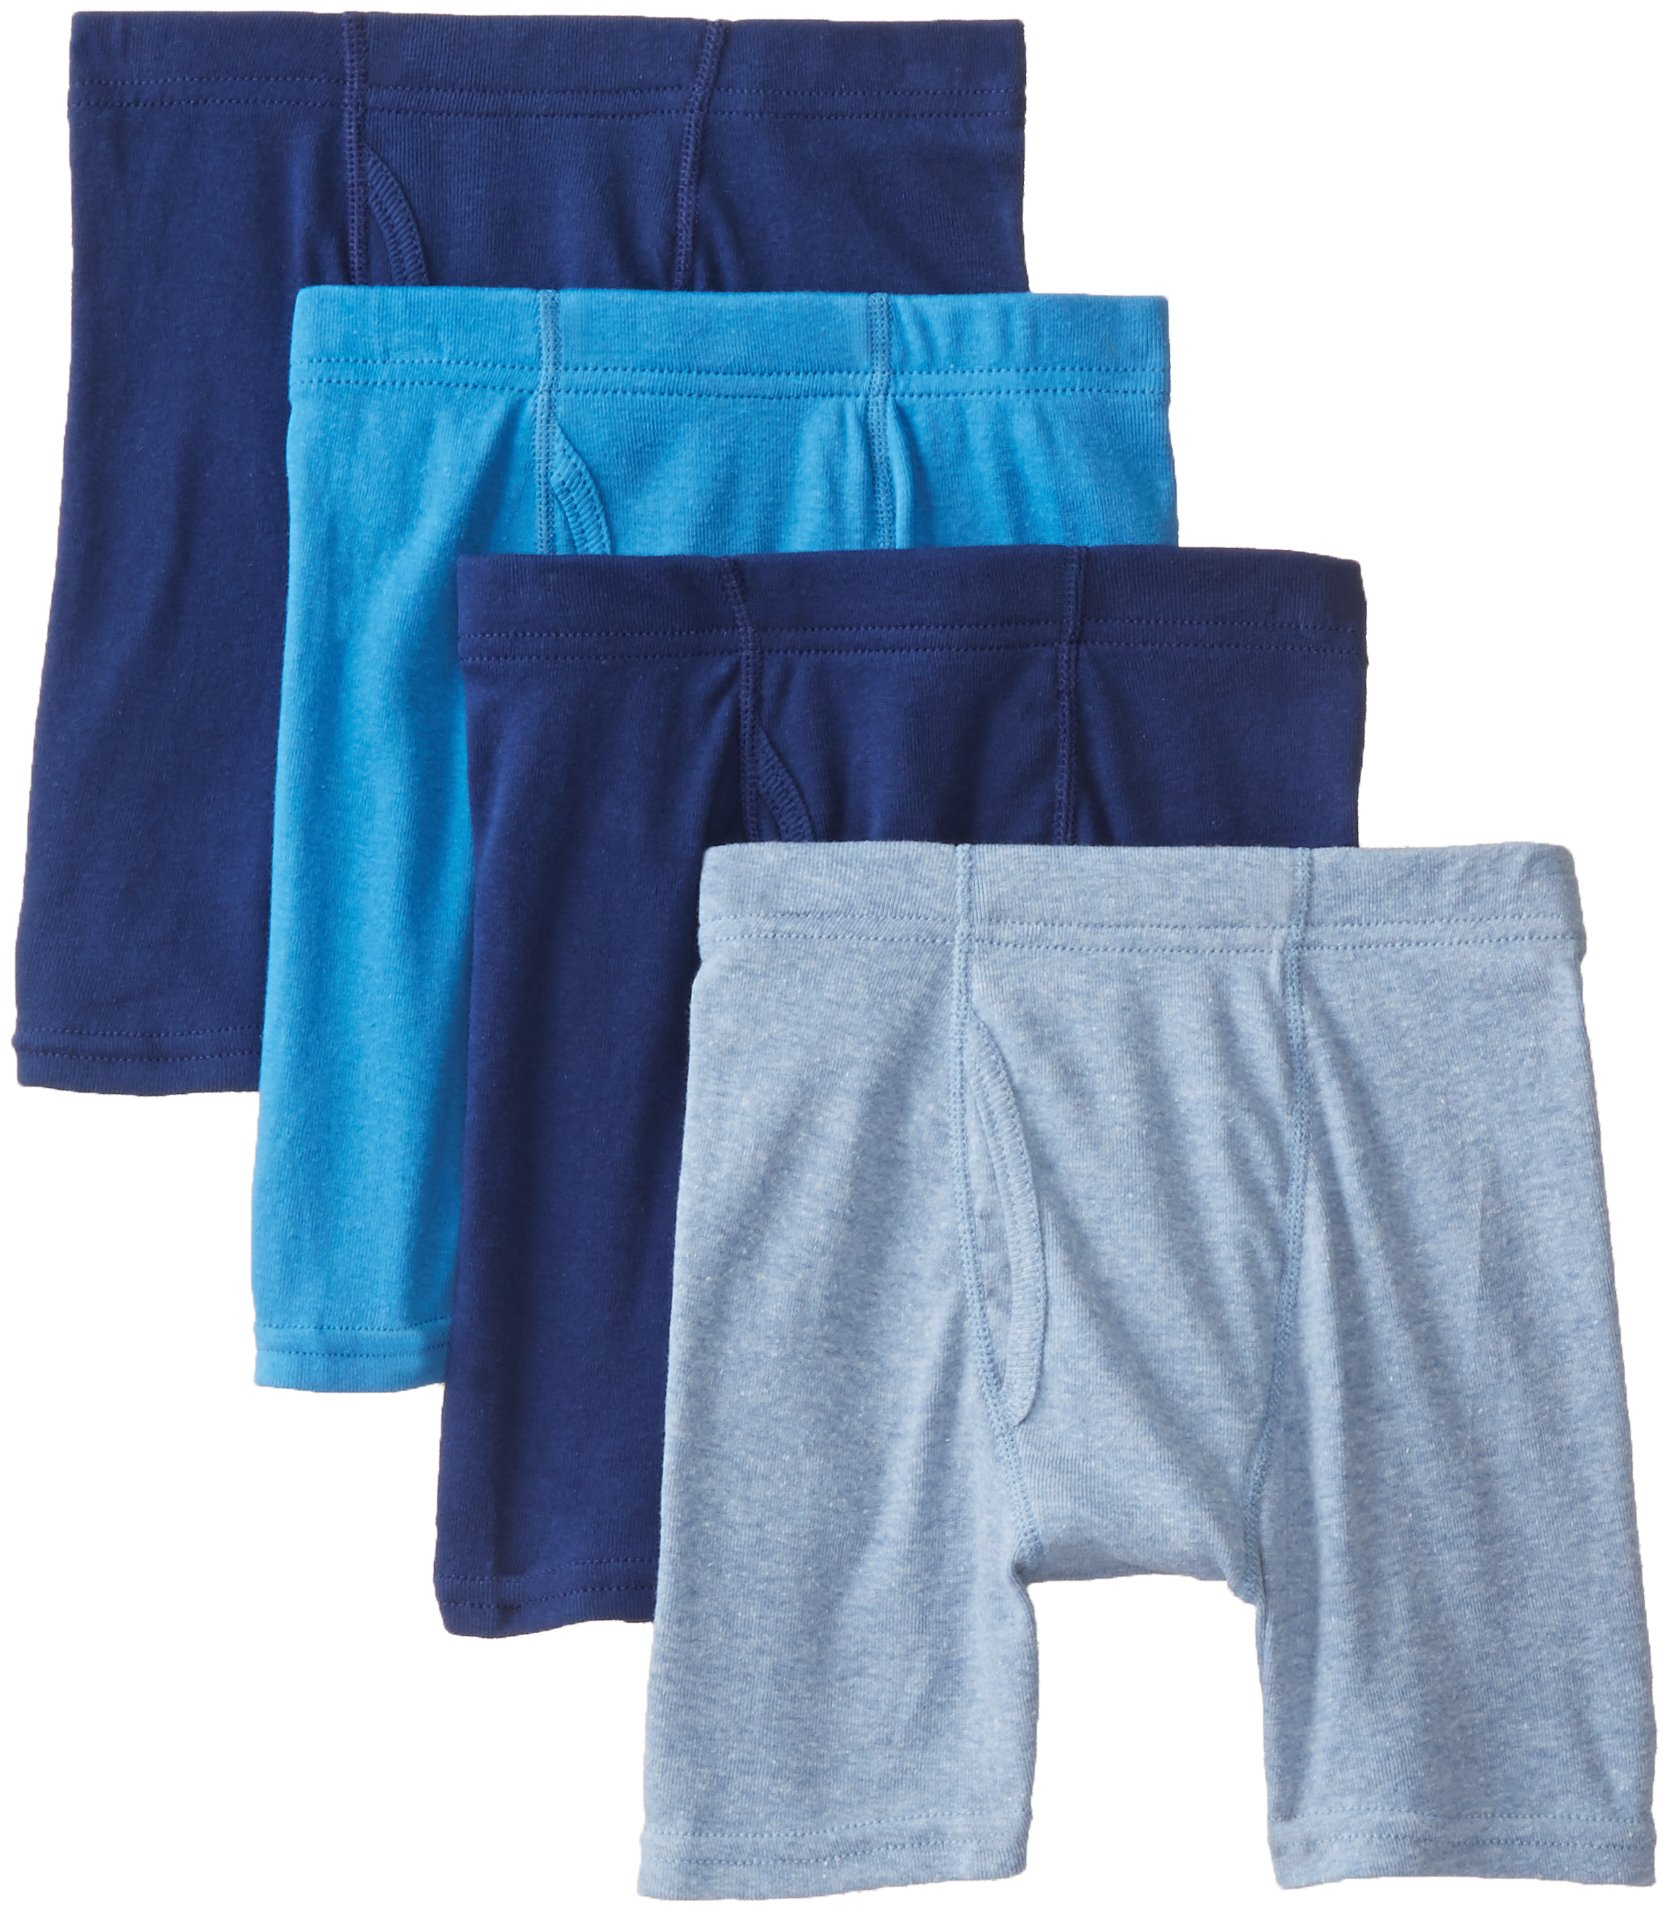 Hanes Boys' 4 Pack Ultimate ComfortSoft Blue Dyed Boxer Brief, Assorted, Medium